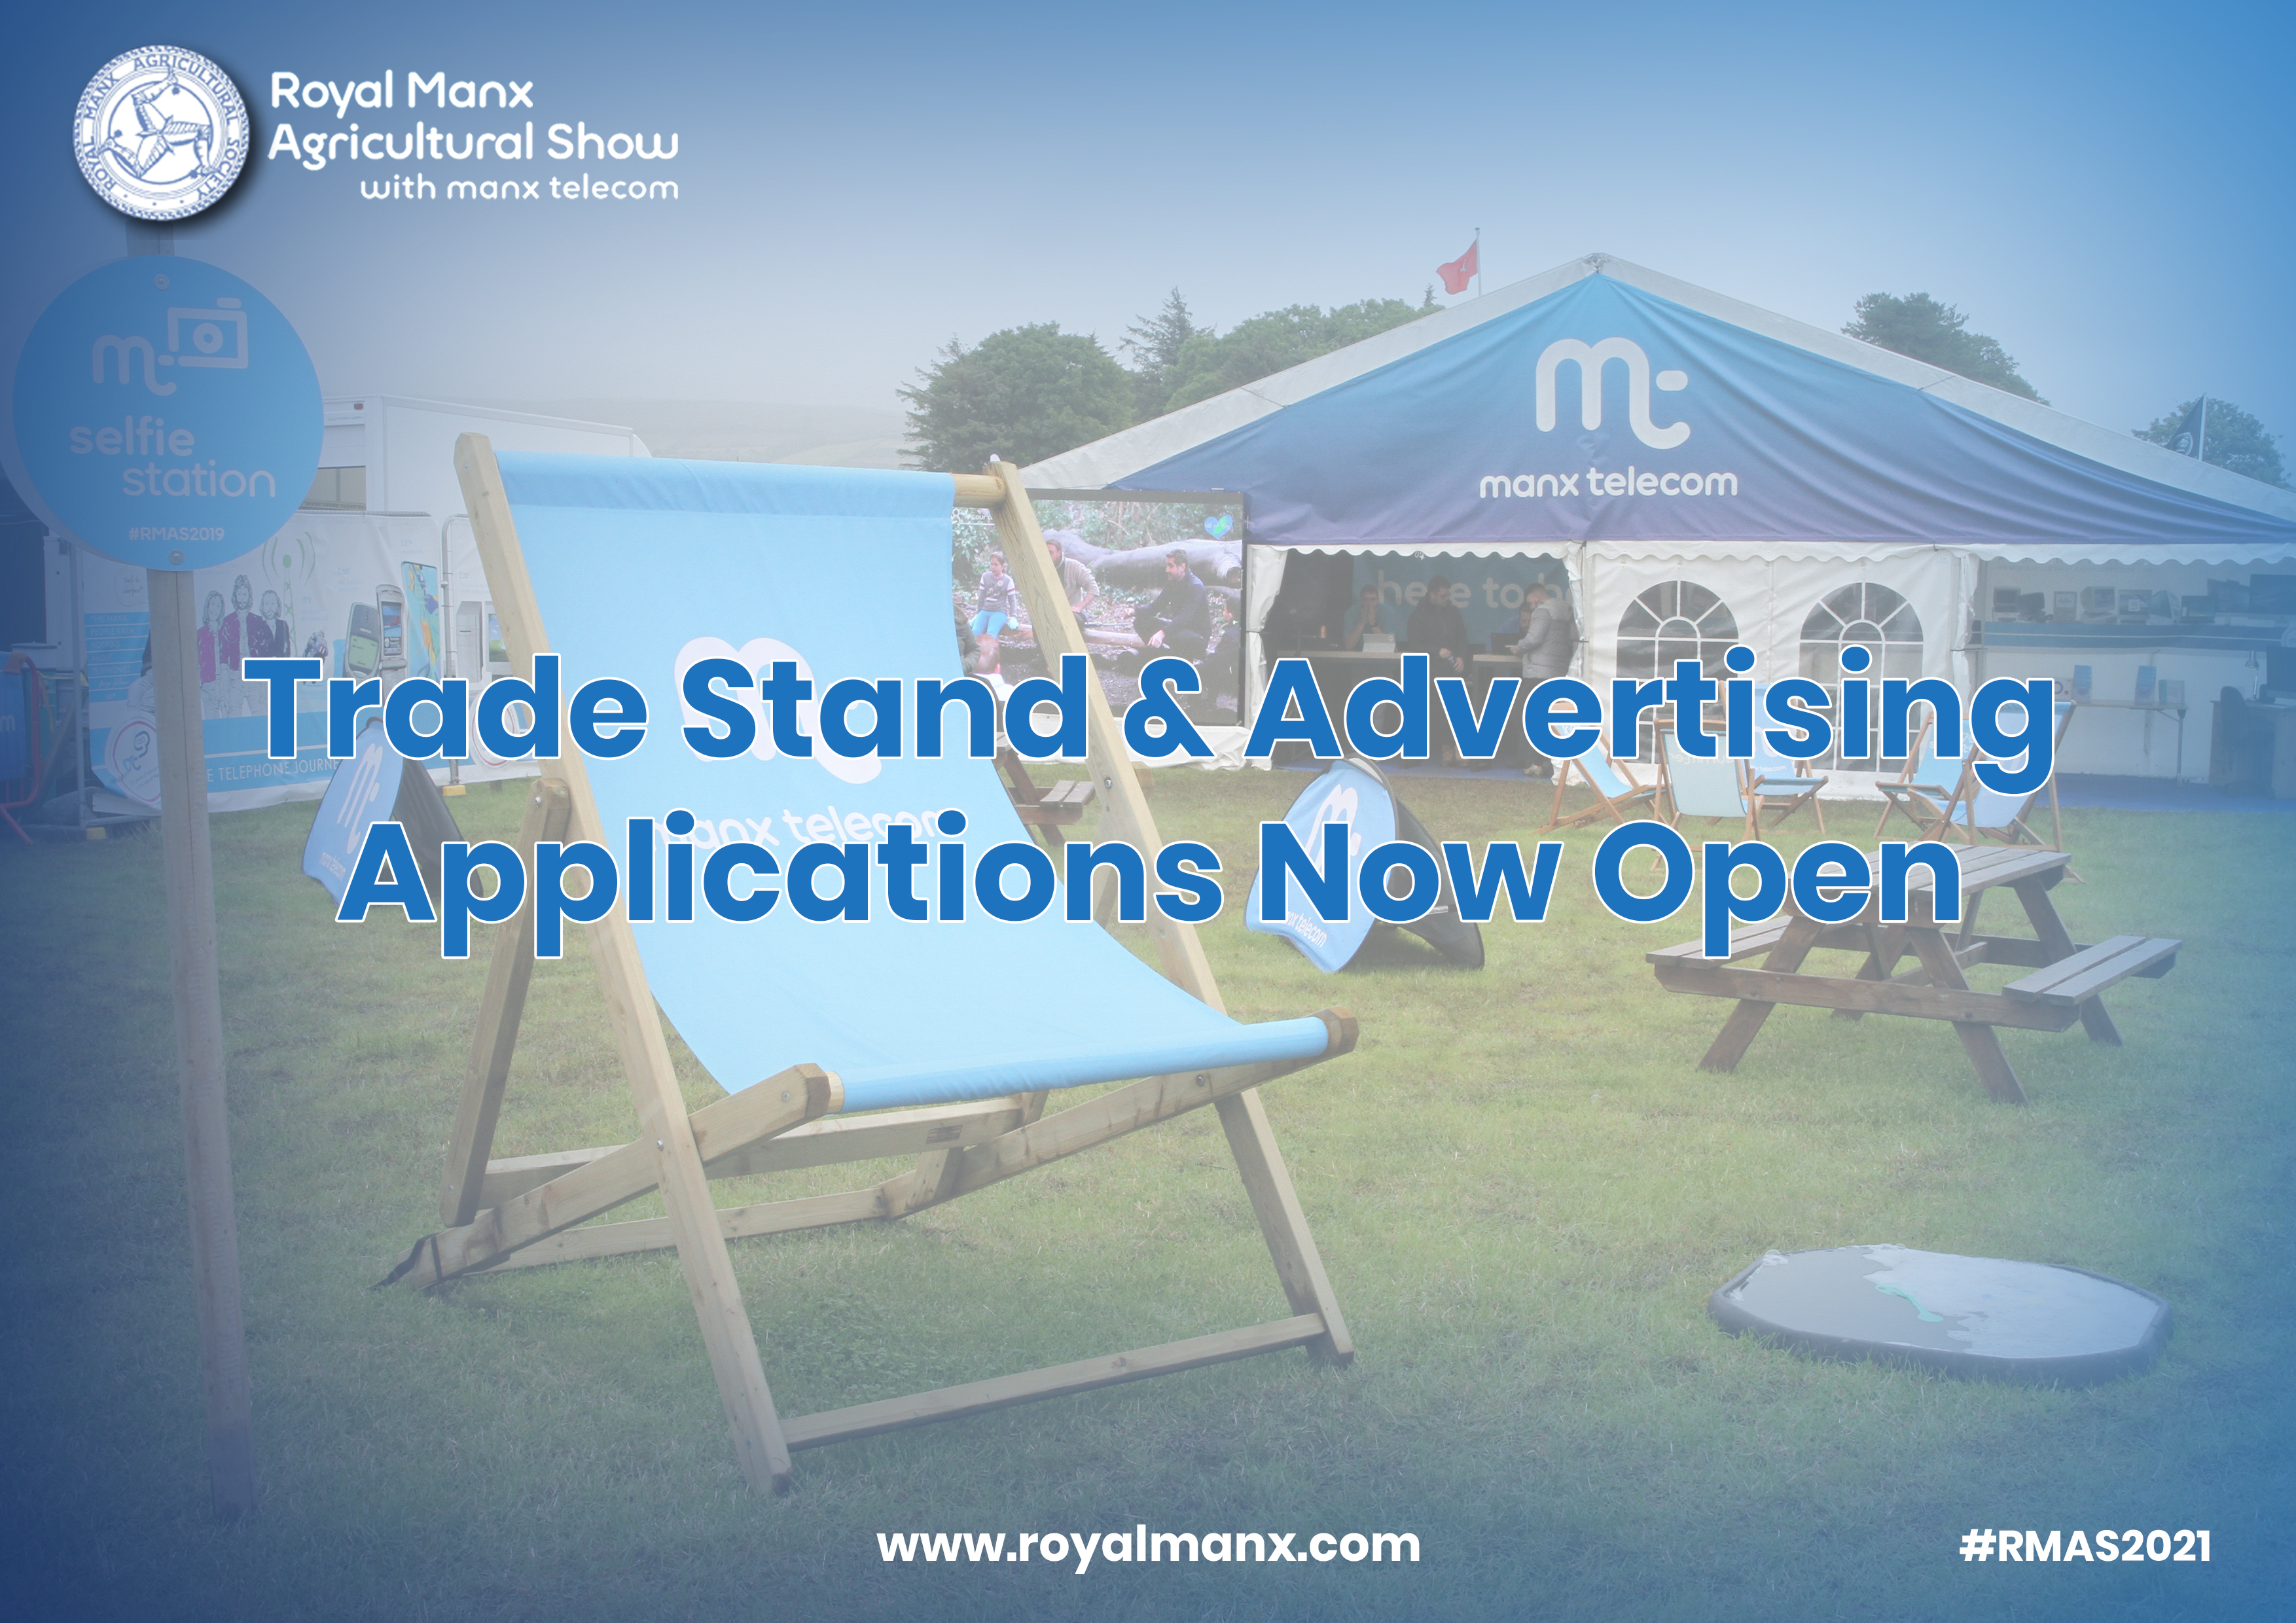 Trade Stand & Advertising Applications Now Open